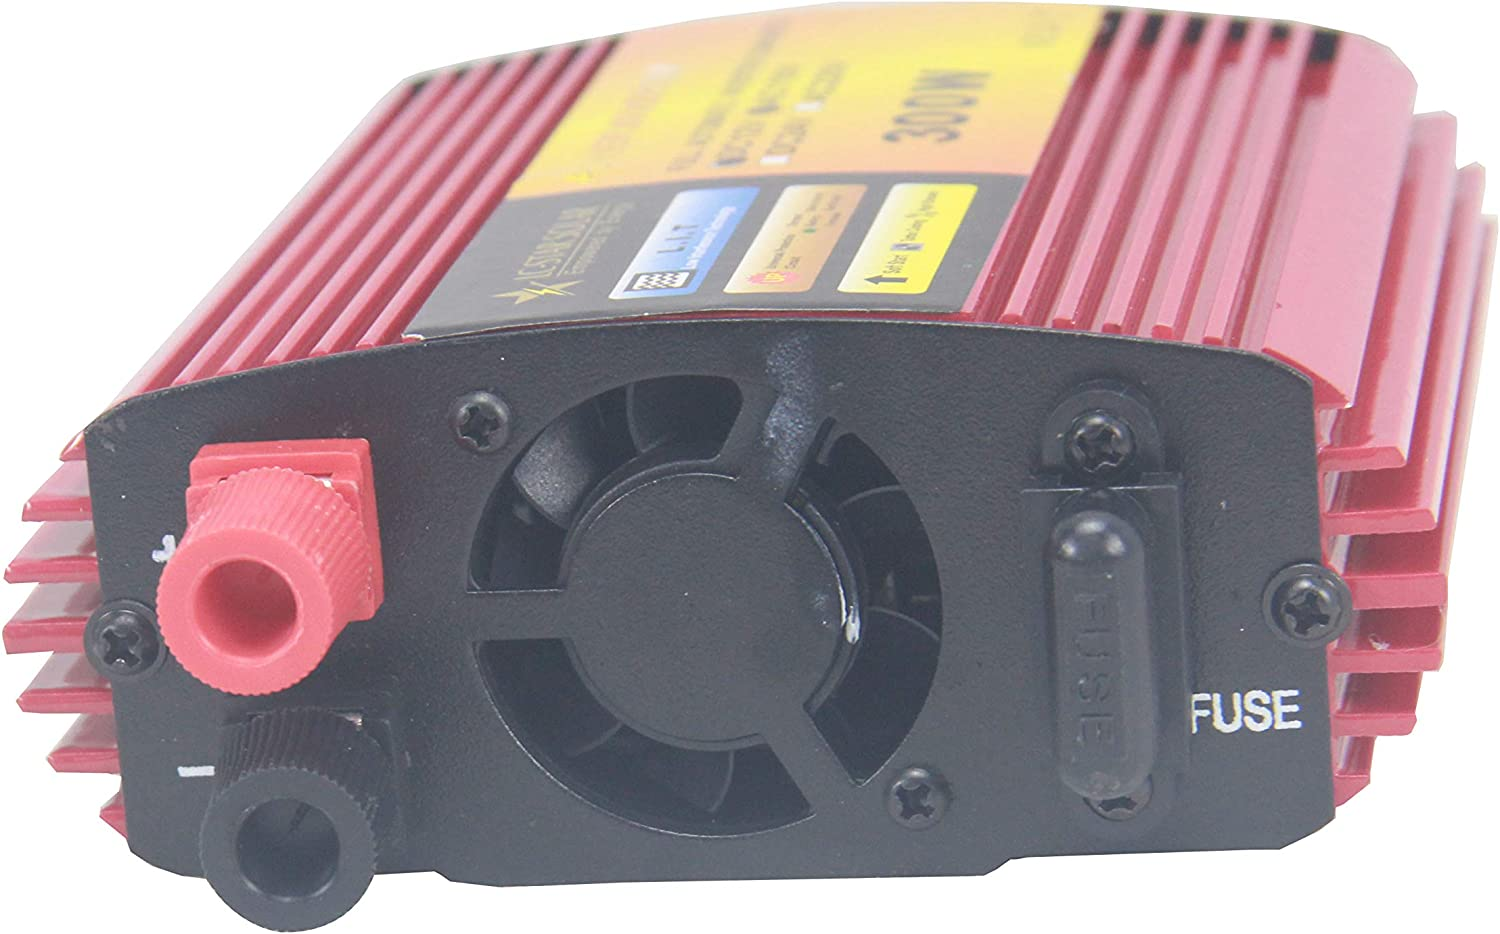 LC-STAR SOLAR 300W Power Inverter DC 12V to 110V AC Car Inverter with 3.1A Dual USB Car Adapter